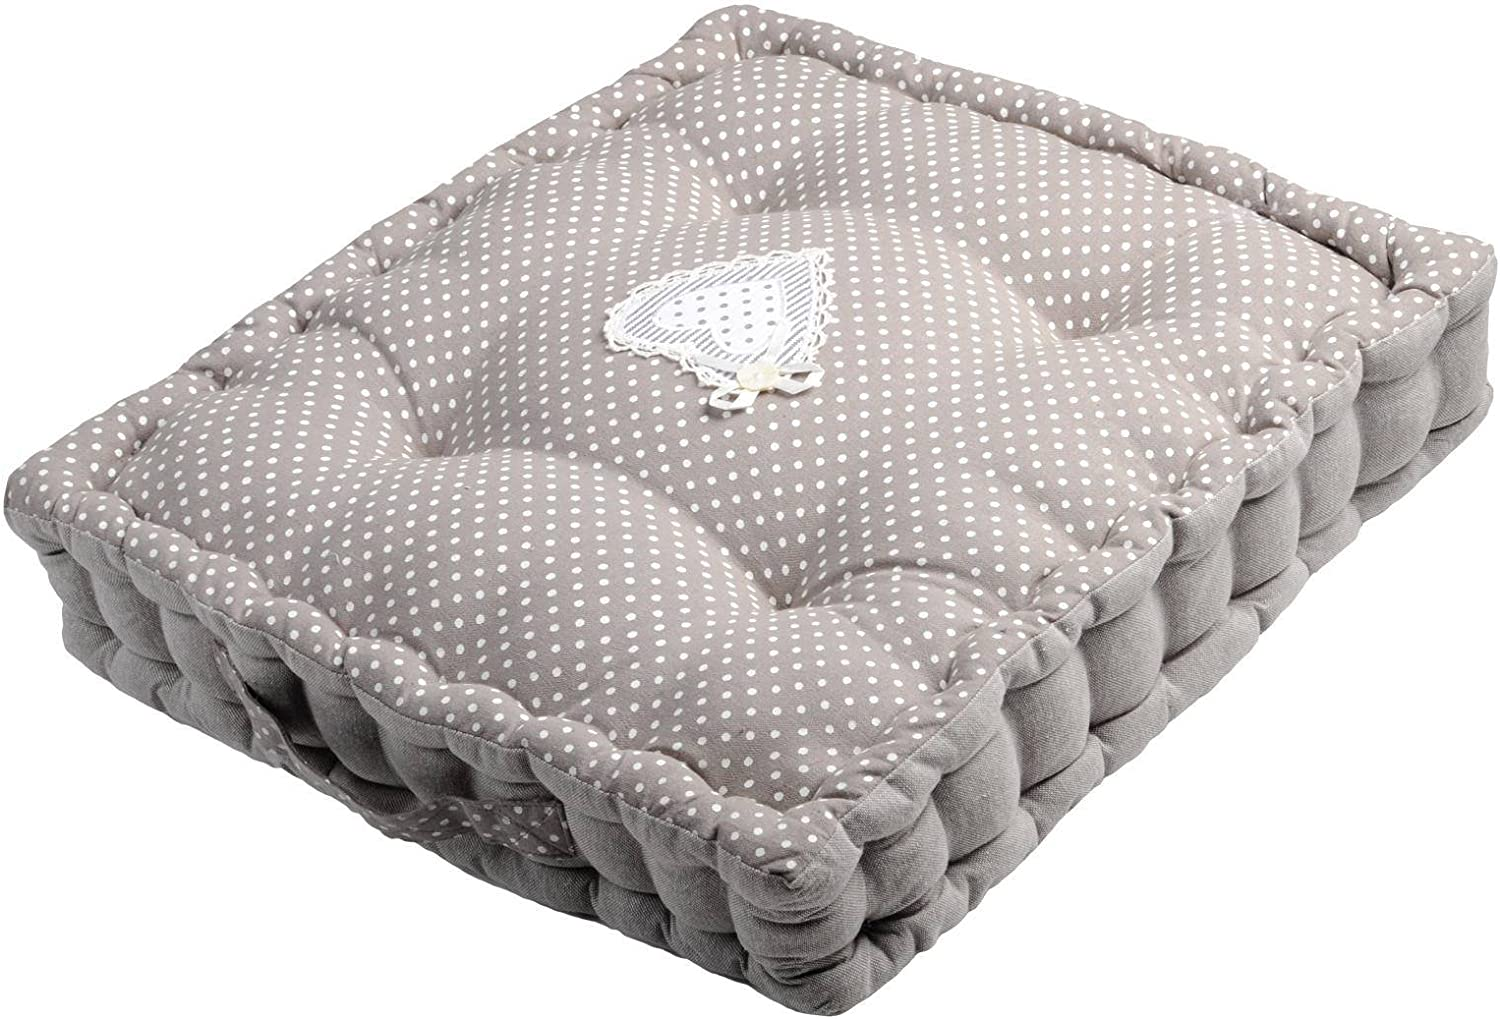 Soleil docre Bella Coussin Tapissier Blanc 40x40x8 cm Polyester